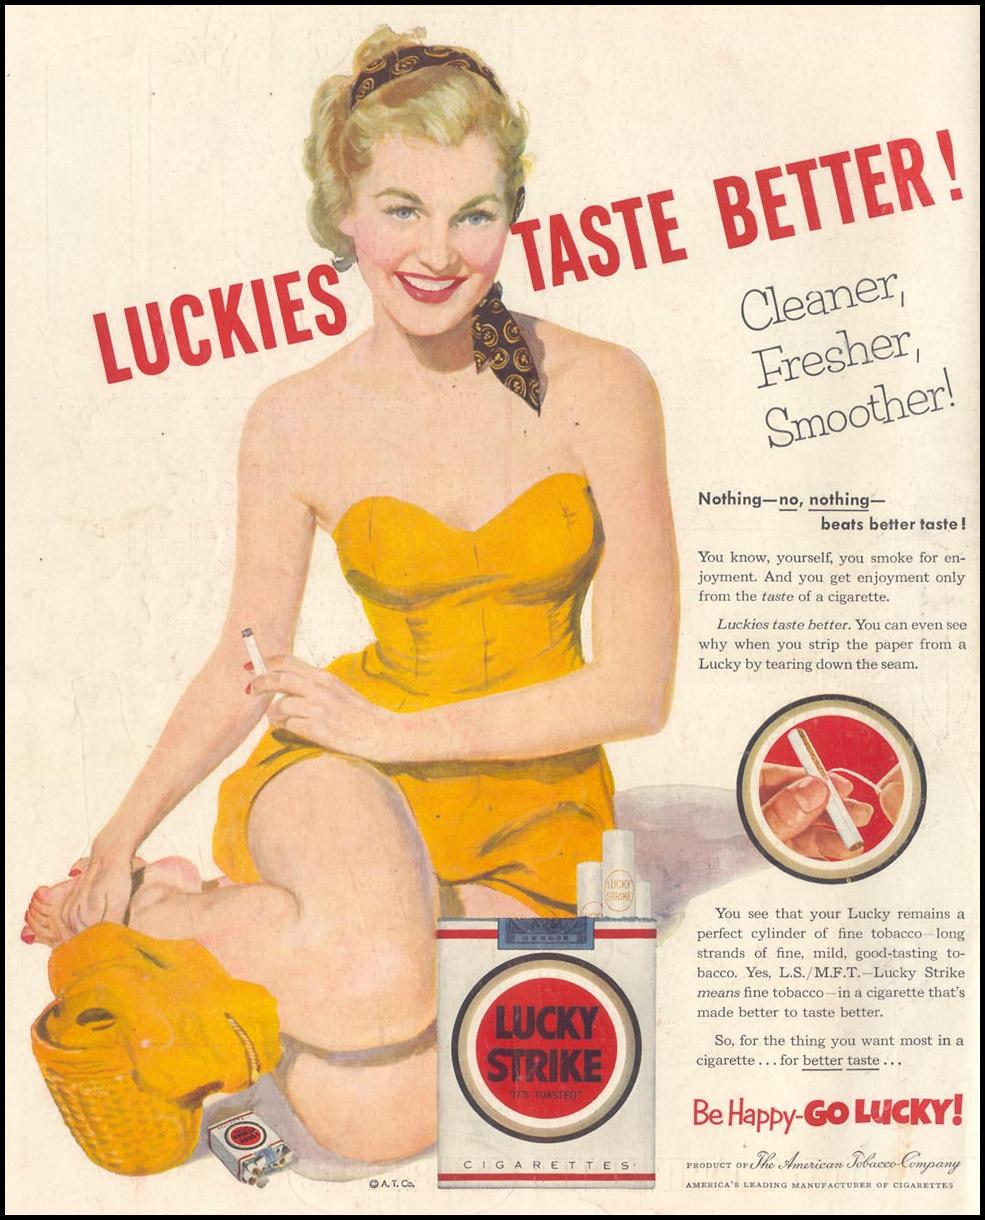 LUCKY STRIKE CIGARETTES LIFE 07/06/1953 BACK COVER